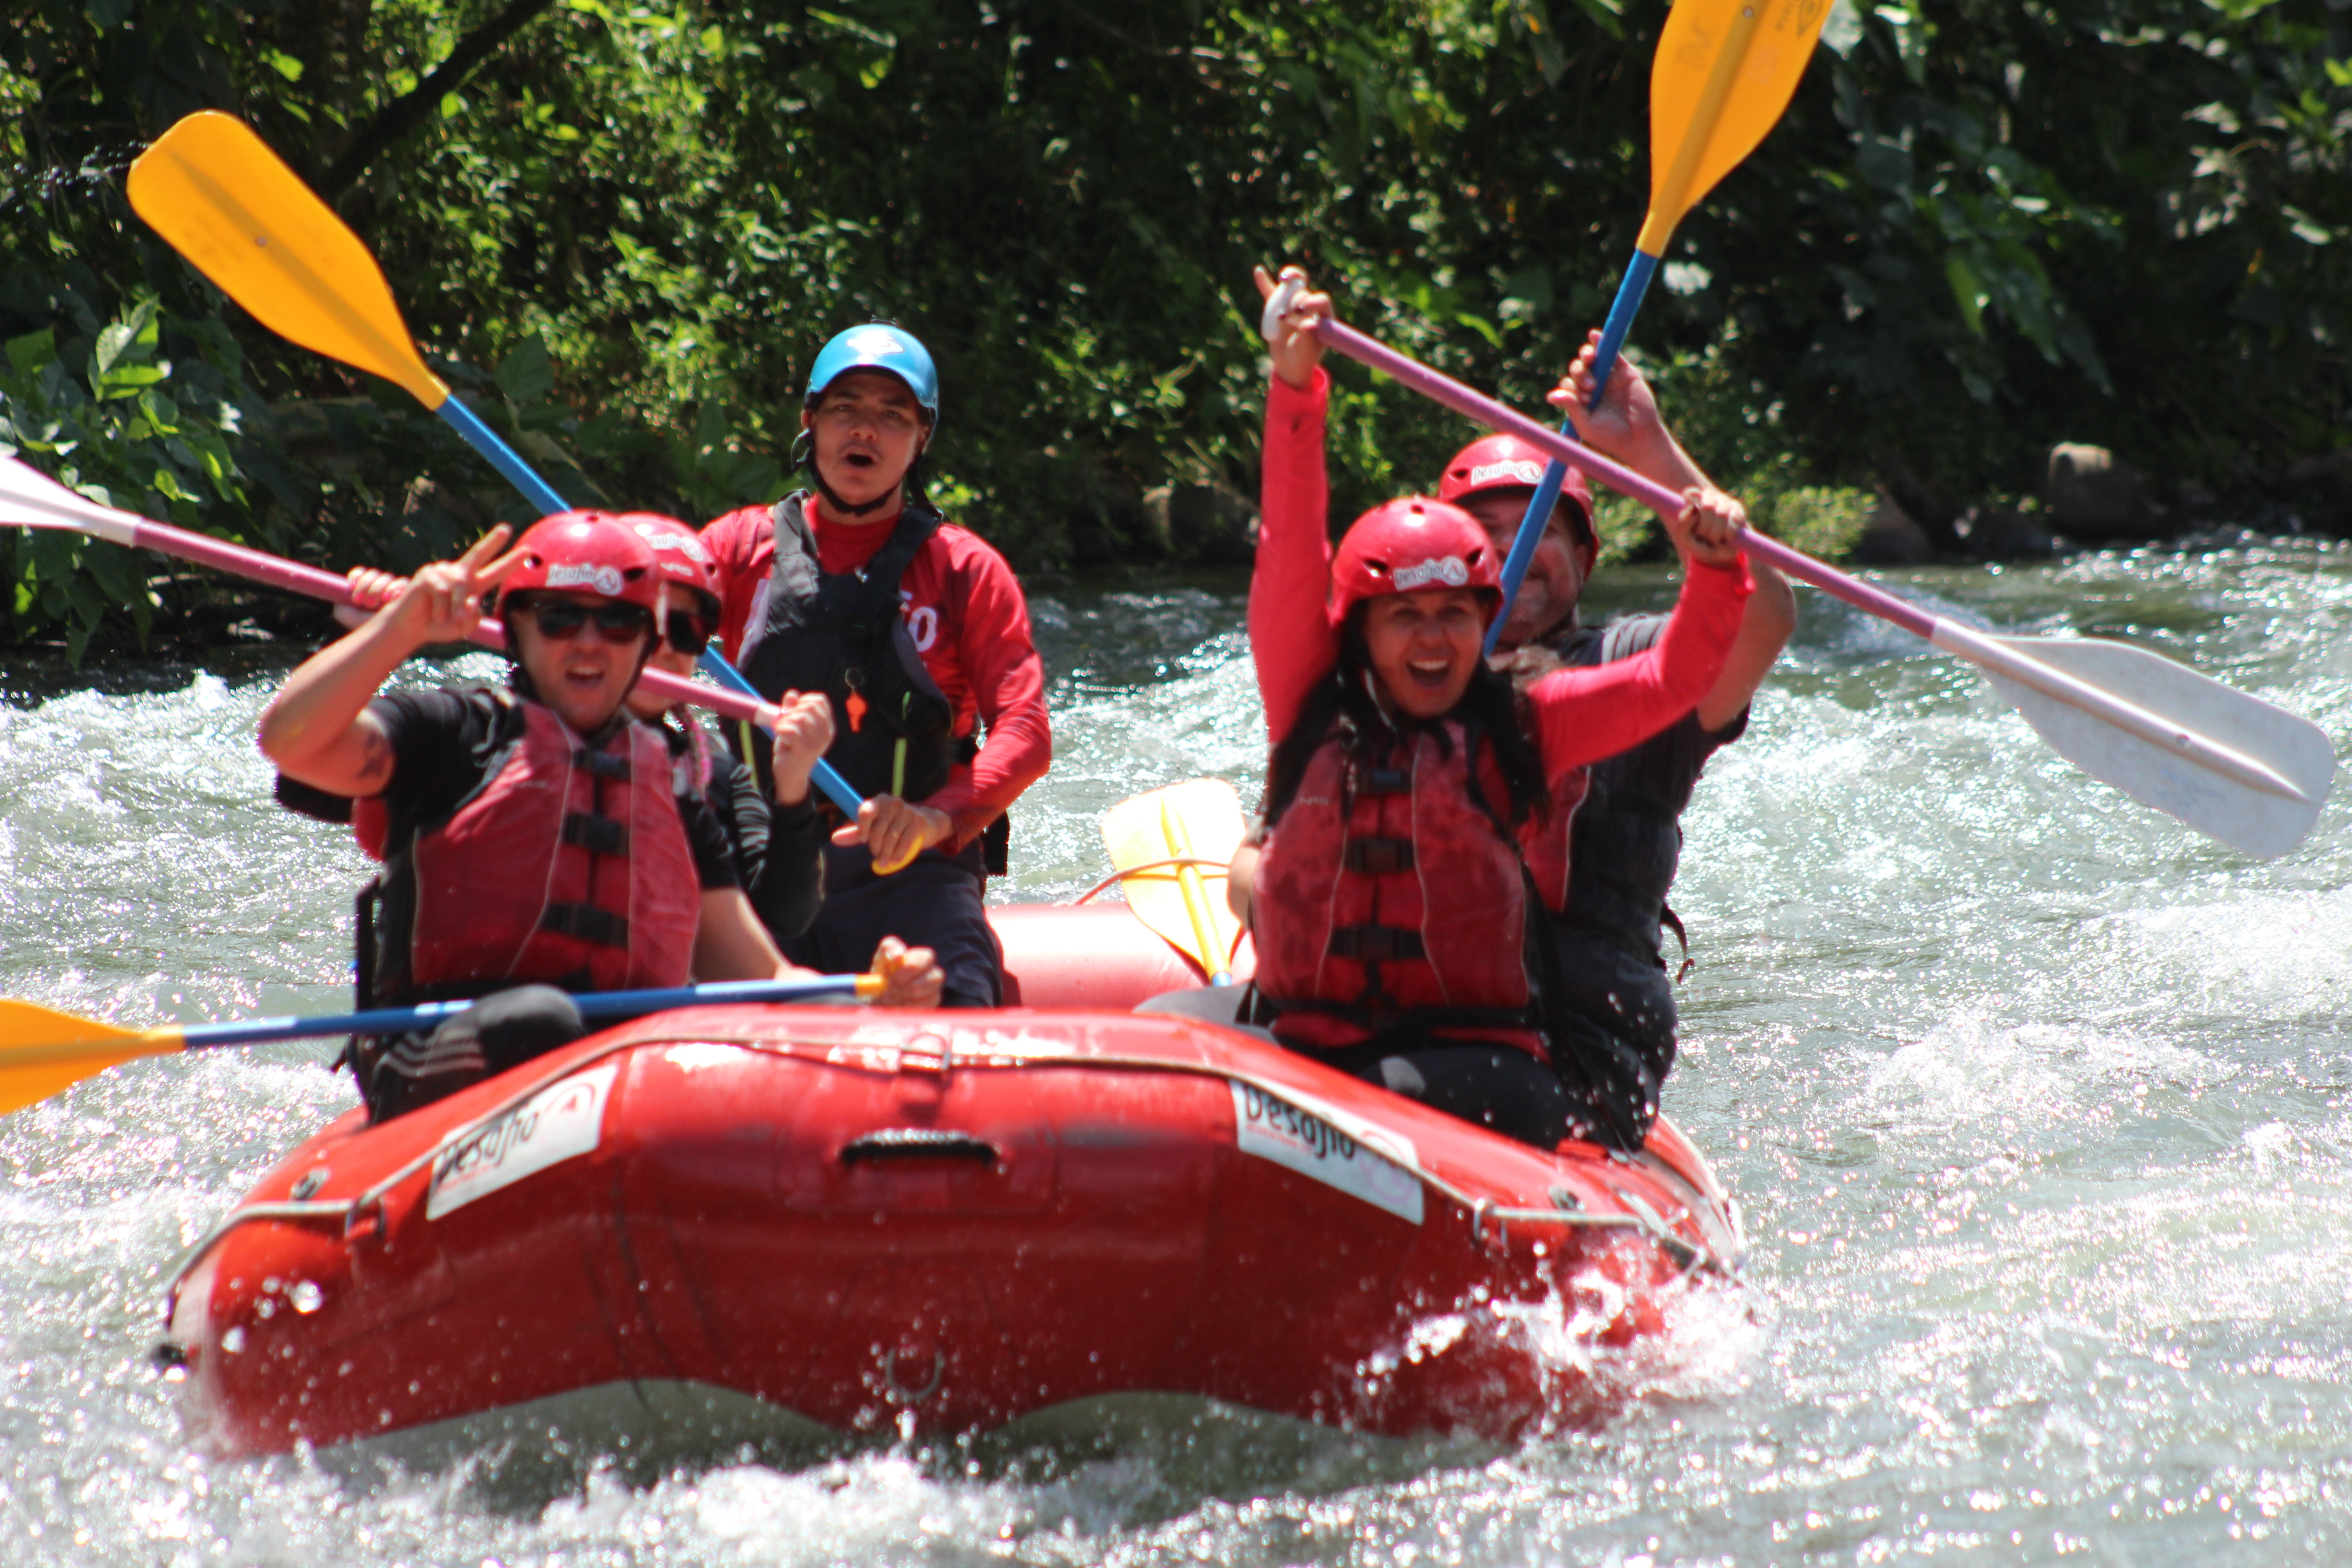 We'll be sure to get your adrenaline pumping,as you make your way through exciting rapids